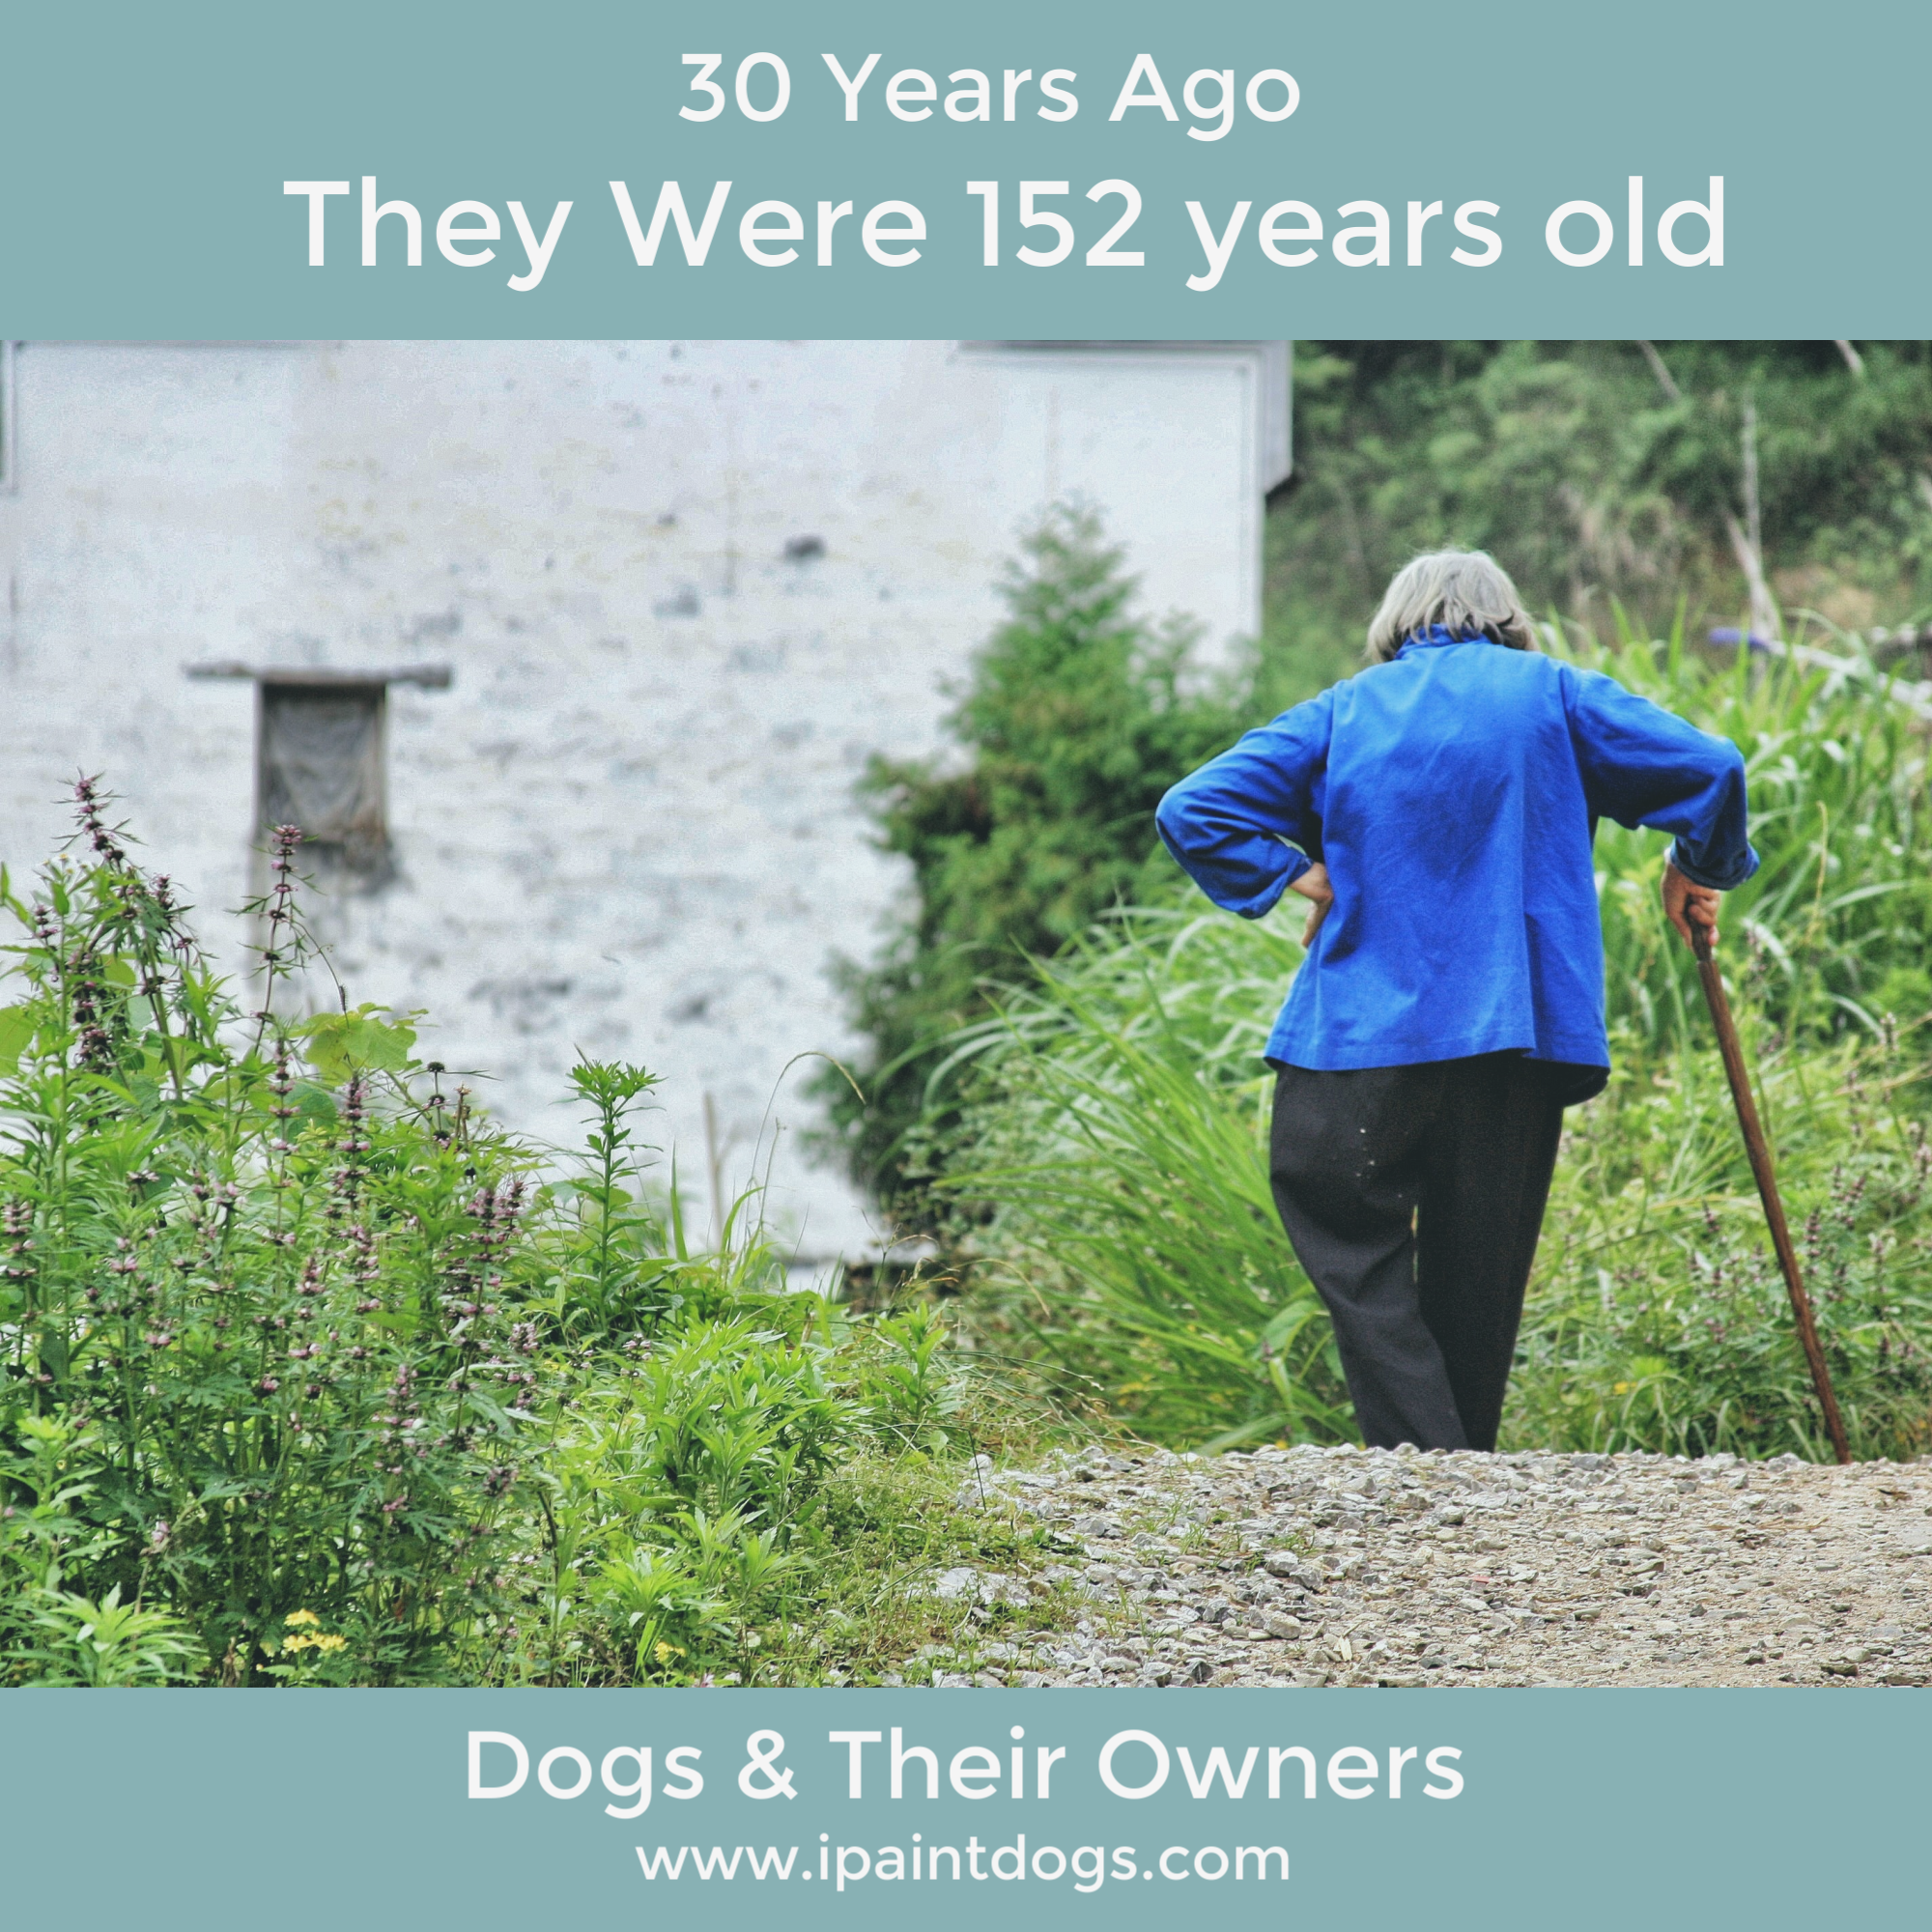 Dogs & Their Owners ageing together by ipaintdogs.com